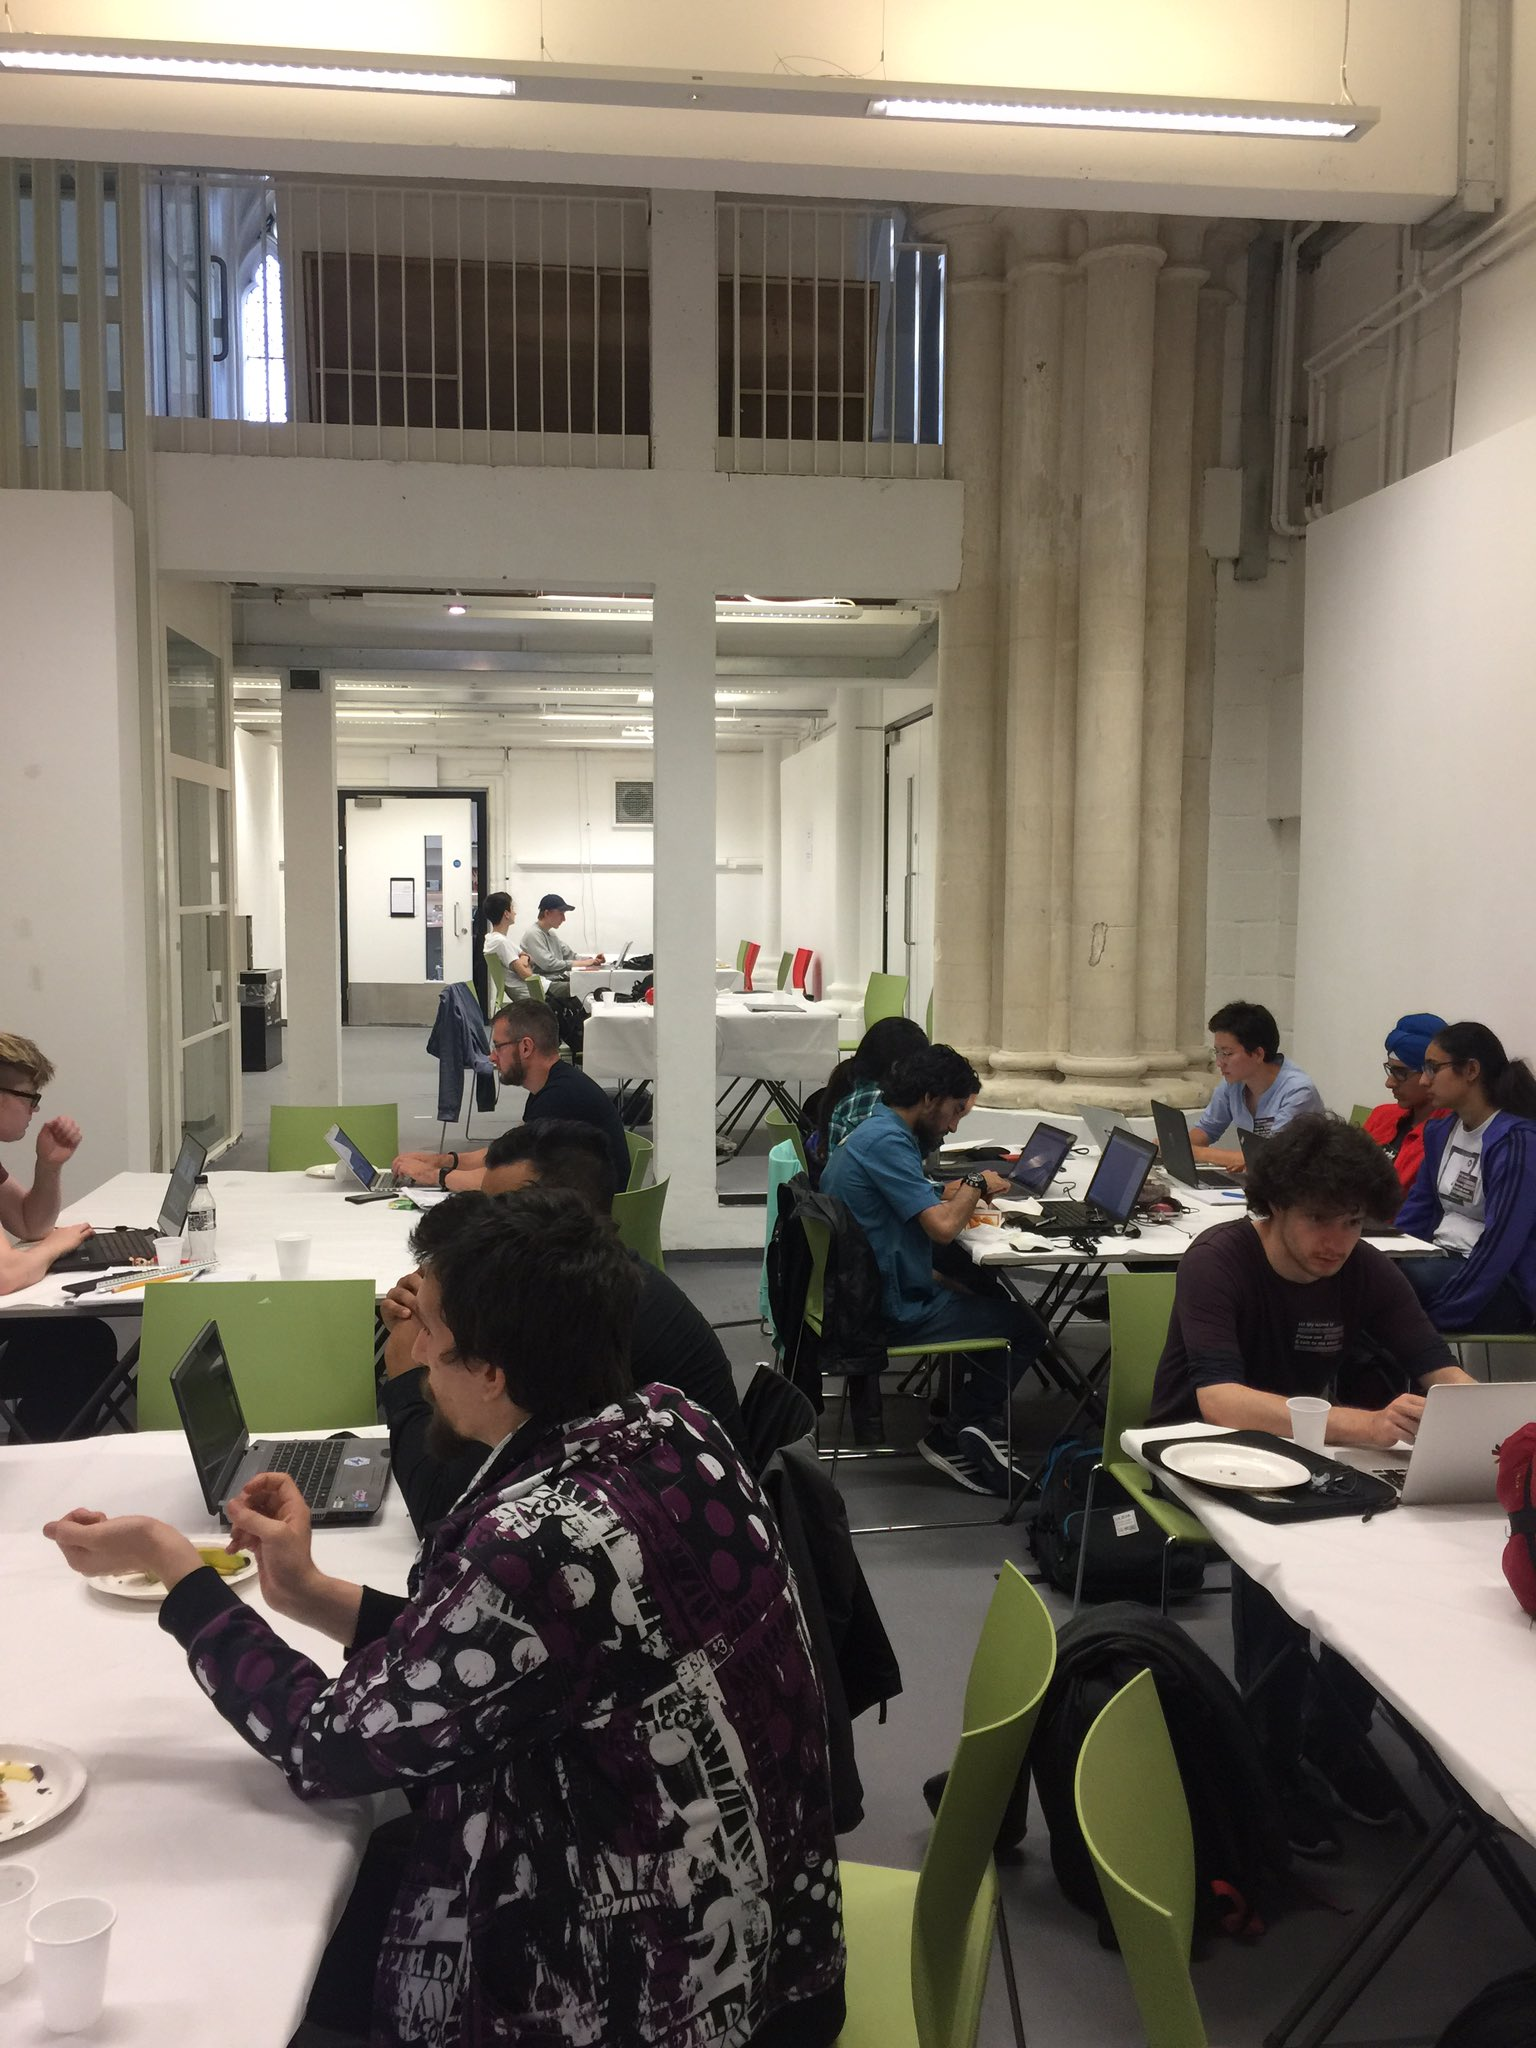 #UKGH17 ideas are coming to life!! #foodTech #hackathon https://t.co/qwDqf7Z2Ee